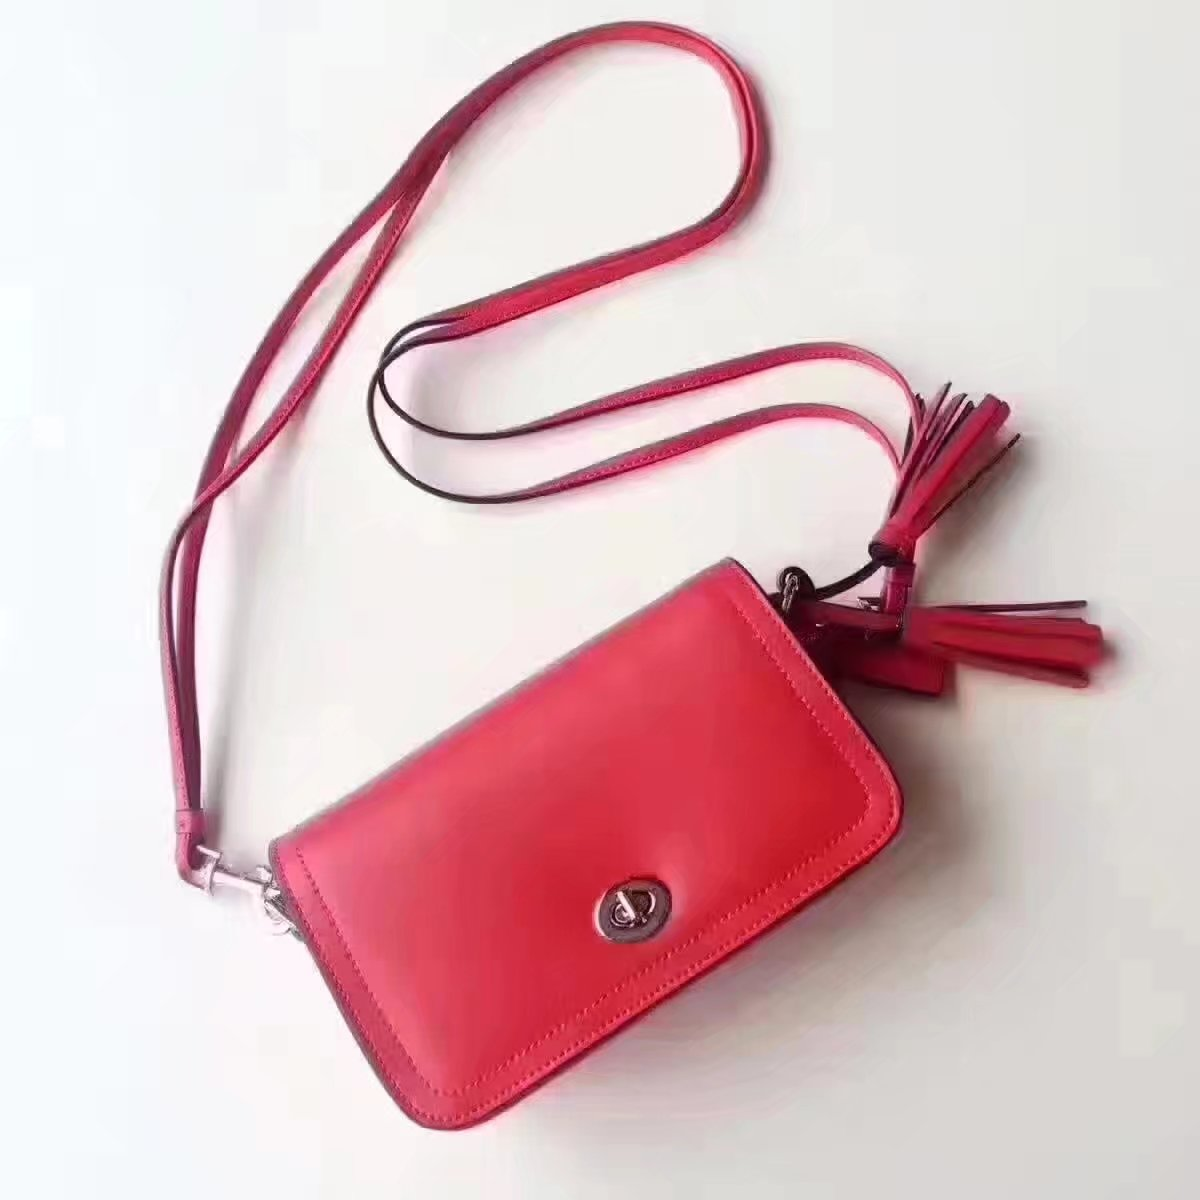 Coach 1941 Dinky In Colorblock Mixed Materials Red